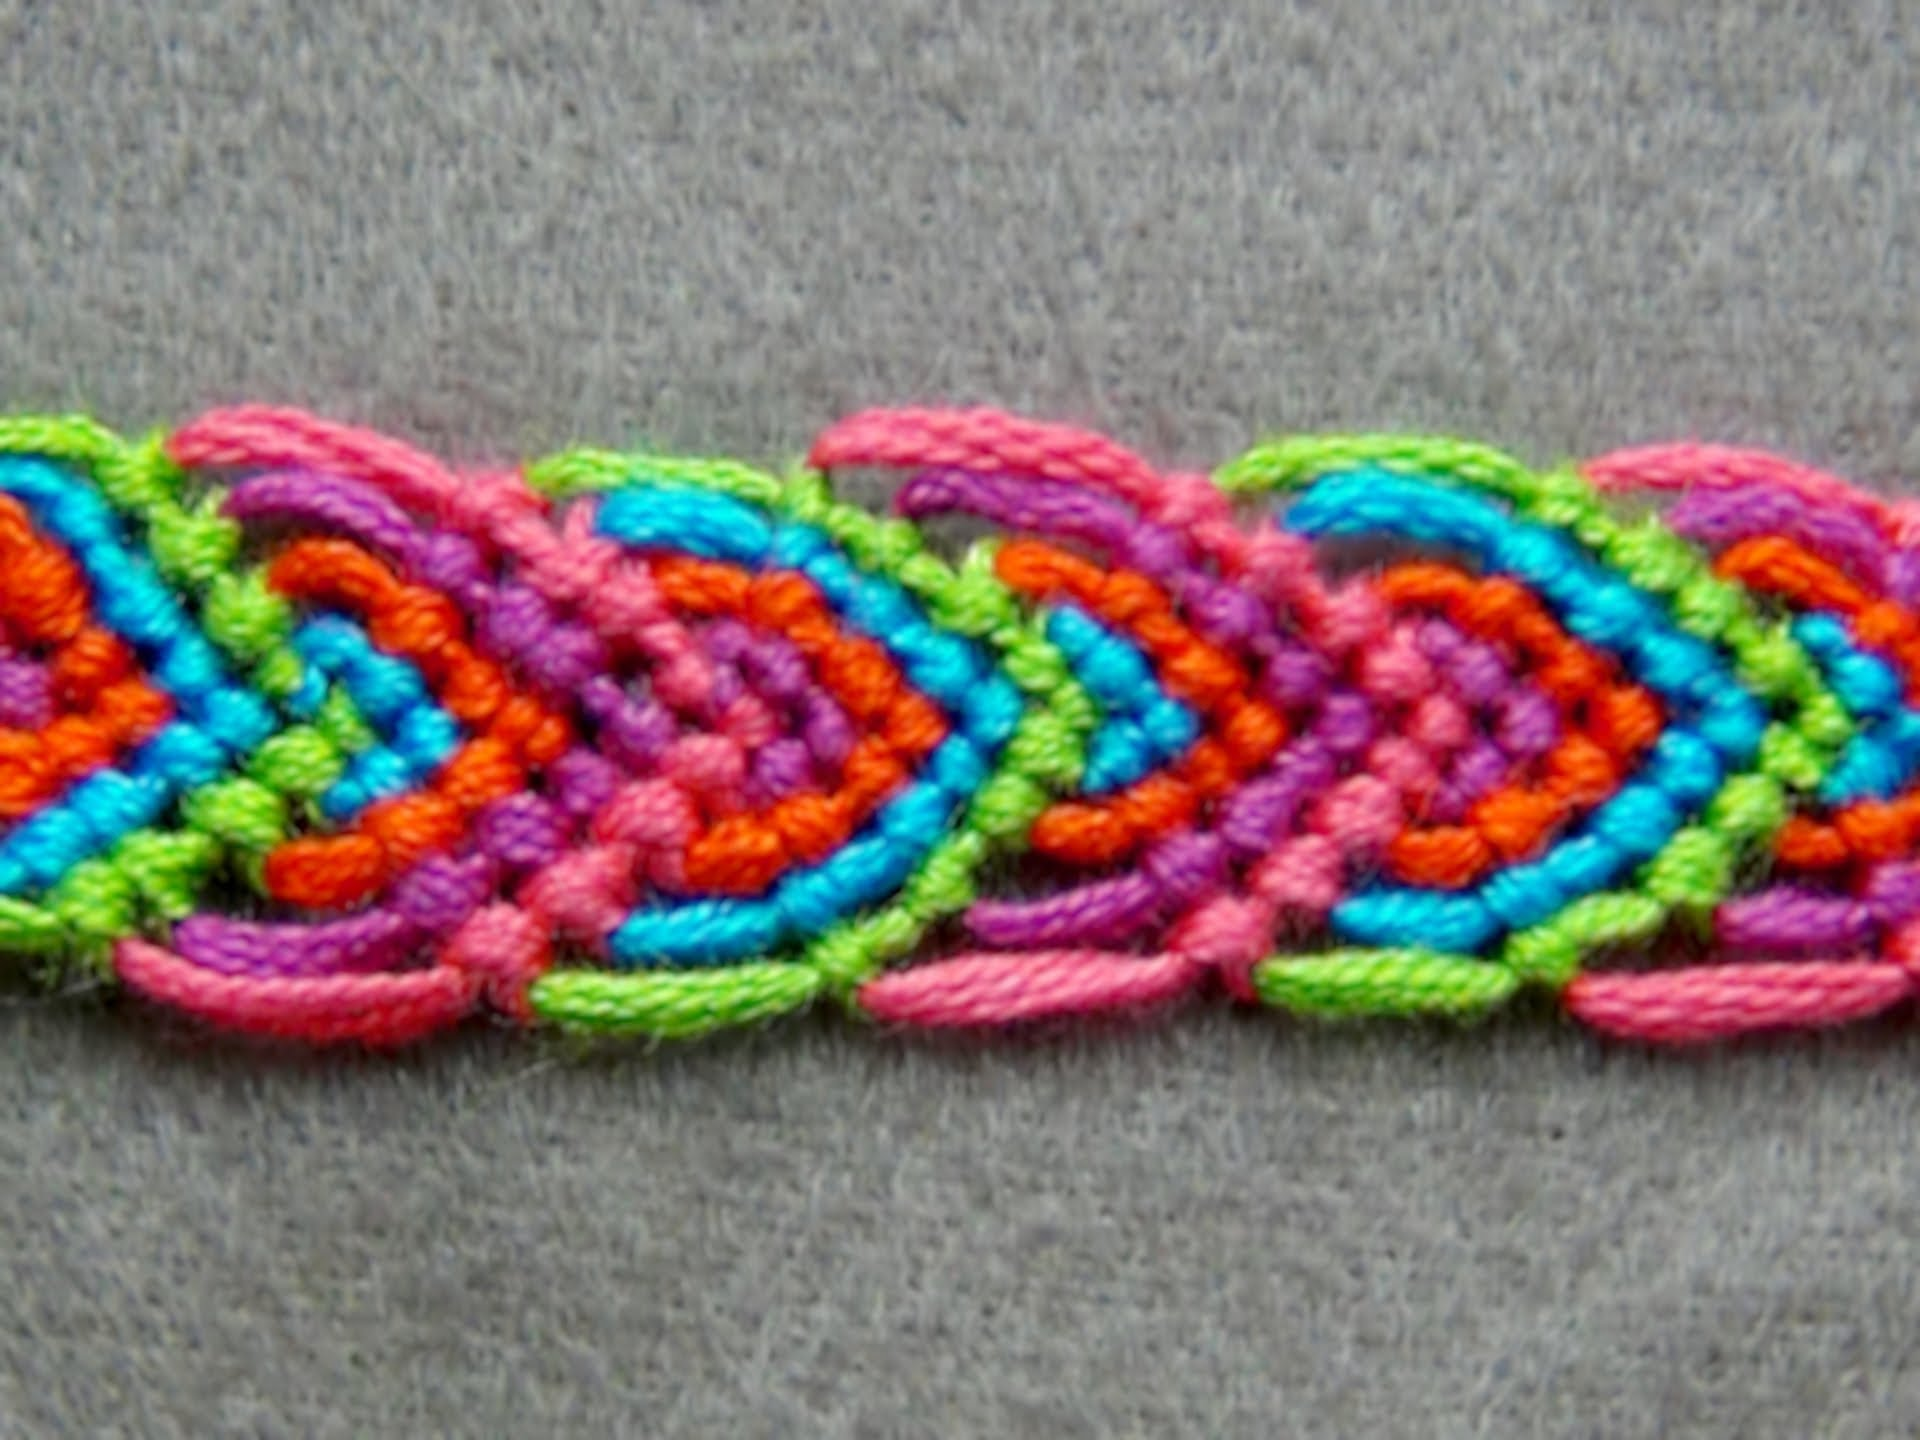 French Knitting With Beads